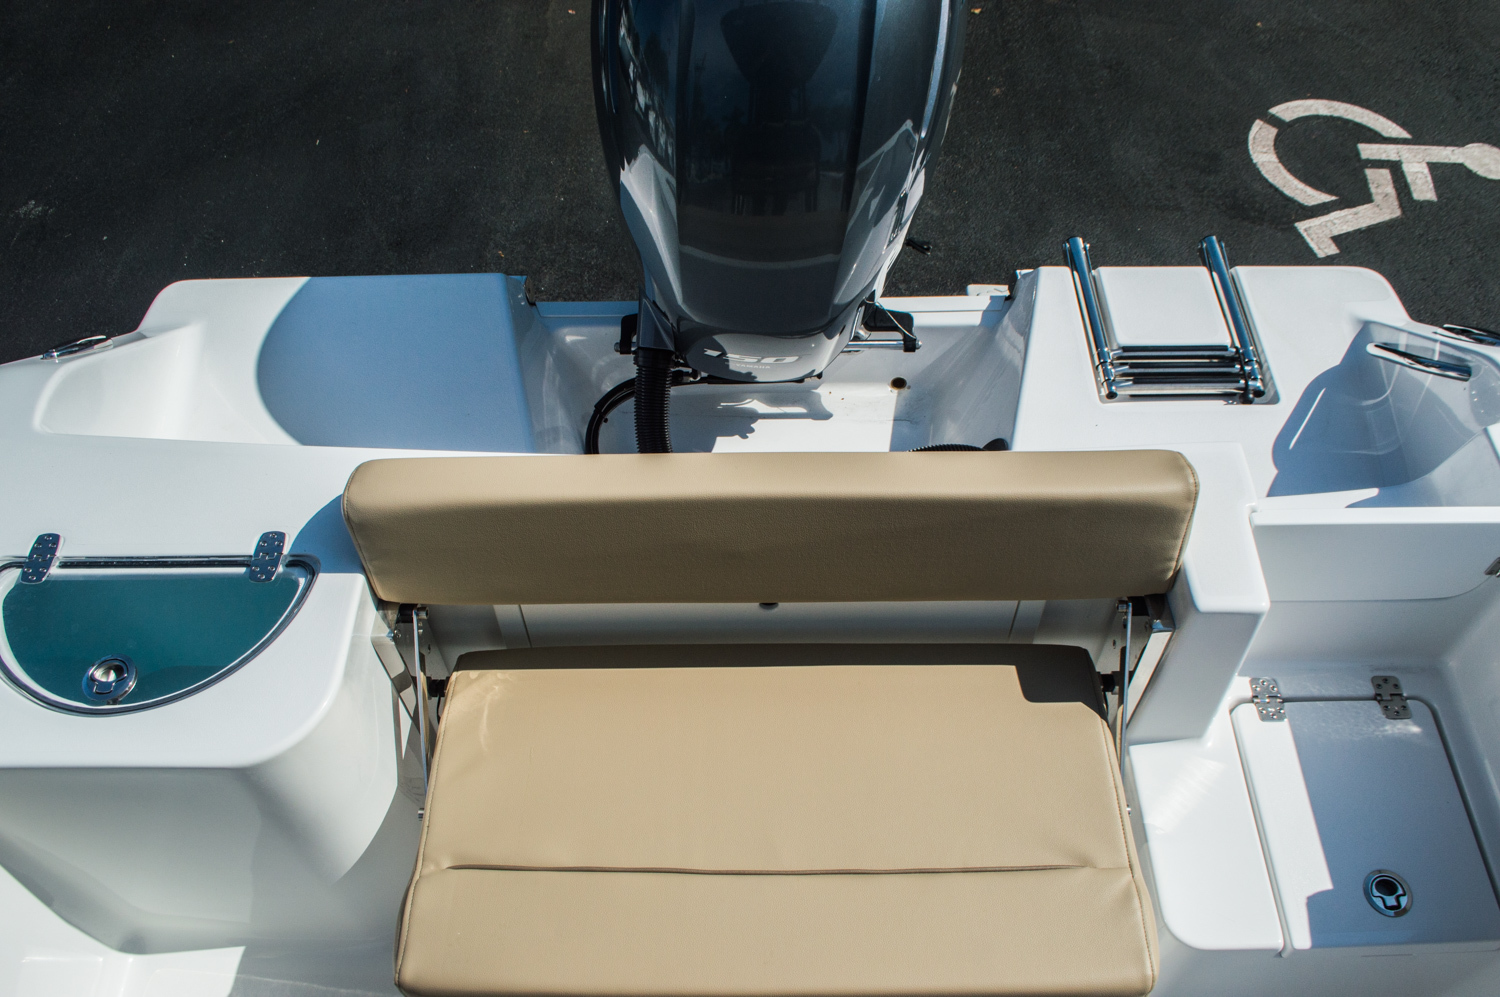 Thumbnail 40 for New 2016 Sportsman Open 212 Center Console boat for sale in West Palm Beach, FL